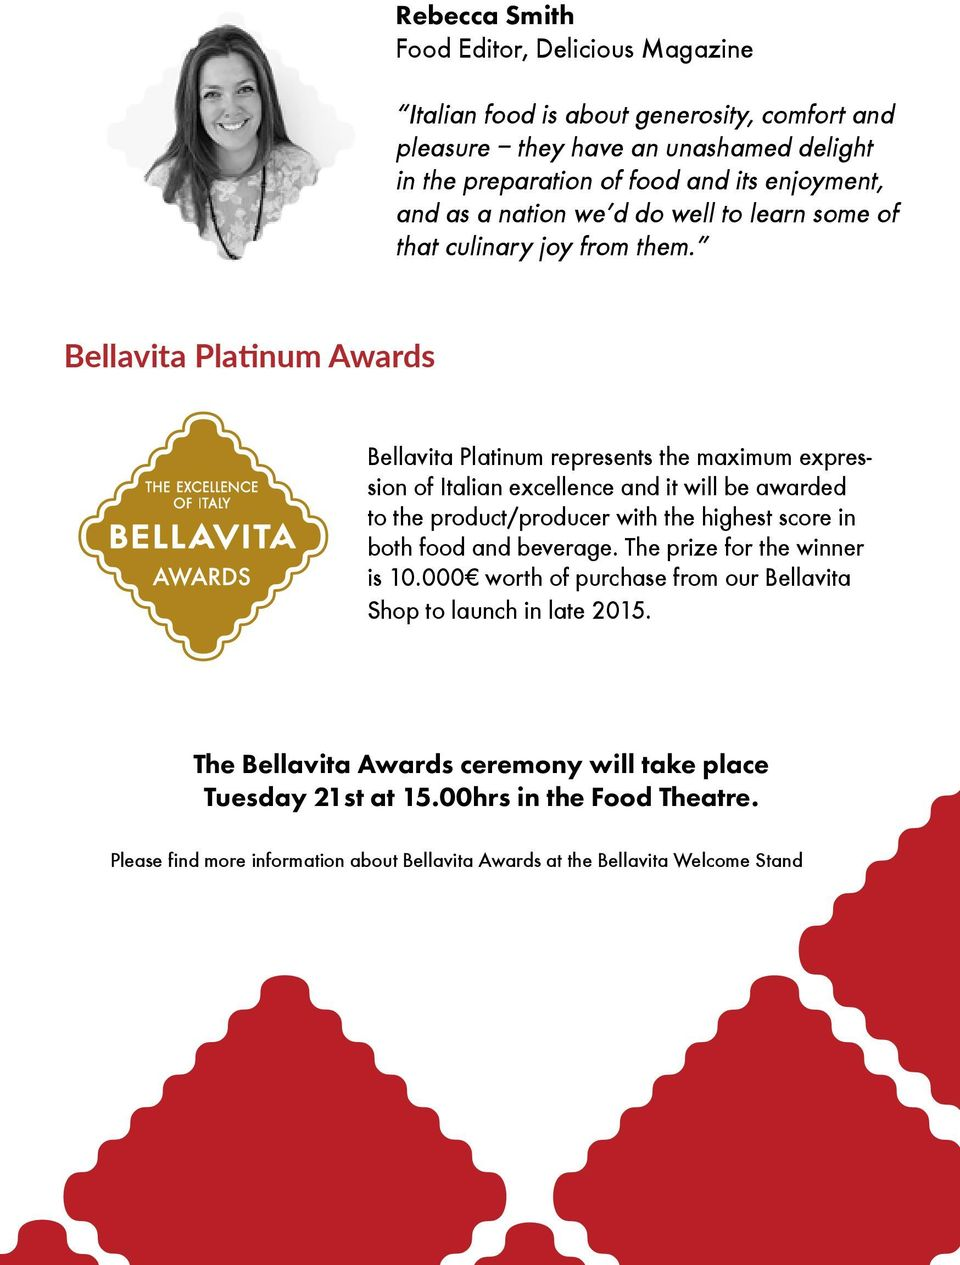 Bellavita Platinum Awards Bellavita Platinum represents the maximum expression of Italian excellence and it will be awarded to the product/producer with the highest score in both